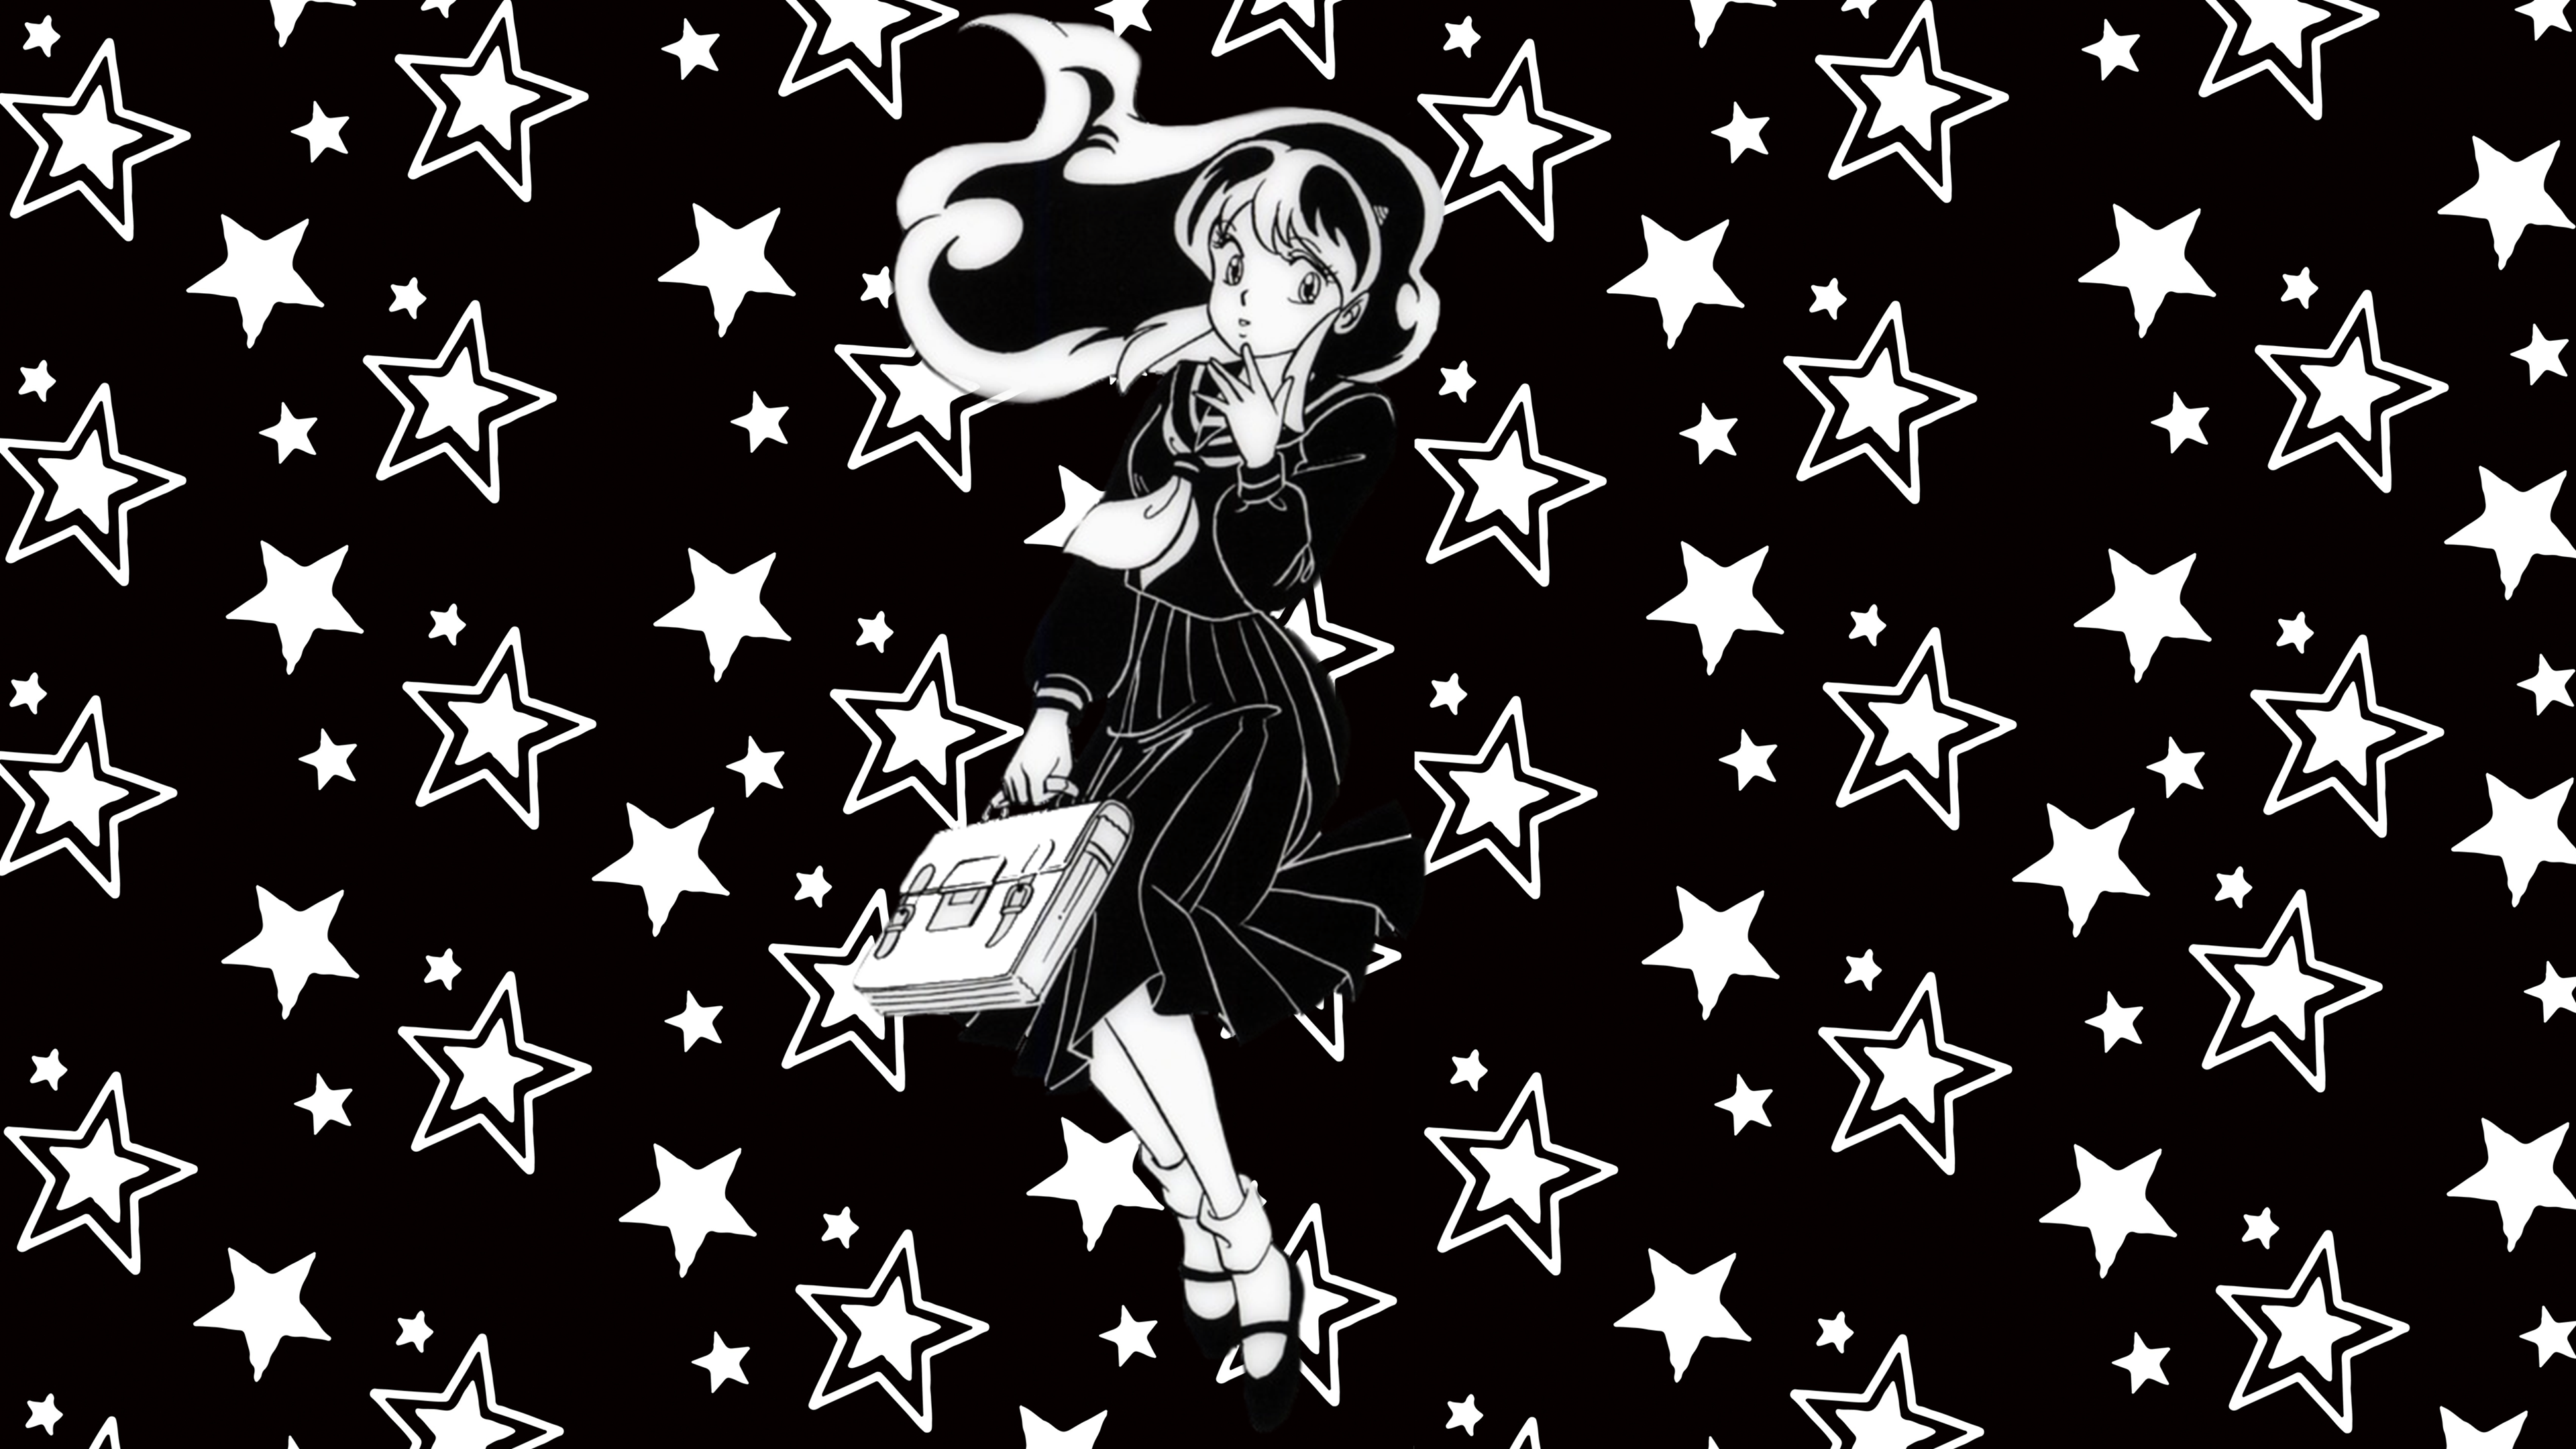 Urusei Yatsura Lum Black White Wallpaper By Uruseiyatsurax On Deviantart